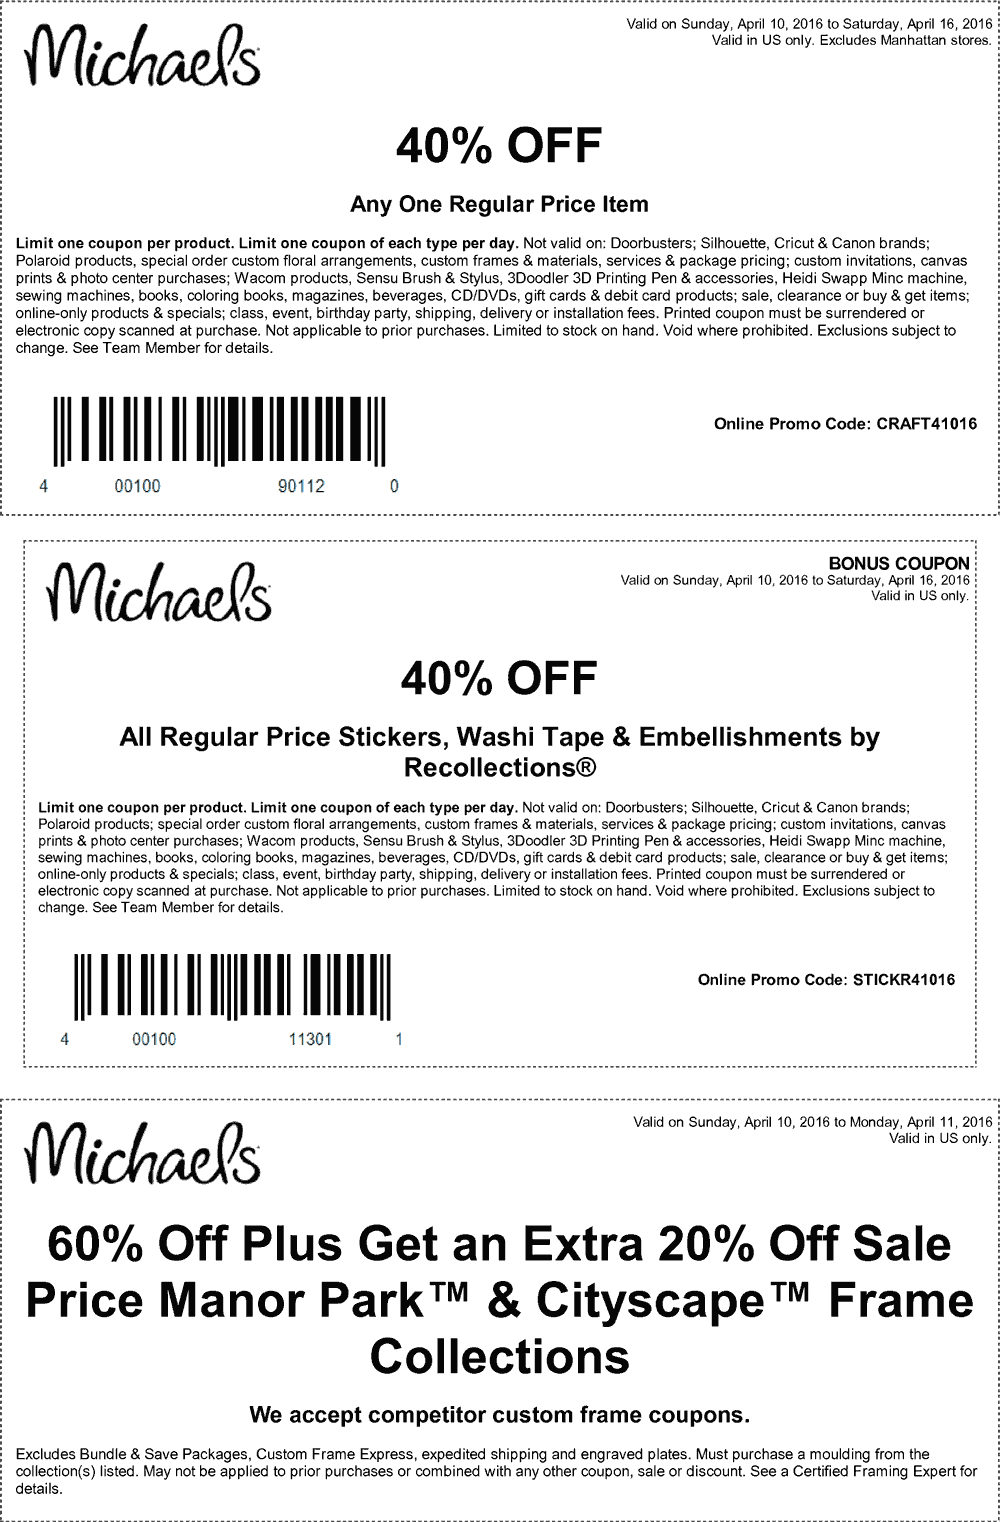 Michaels Coupon October 2017 40% off a single item & more at Michaels, or online via promo code CRAFT41016